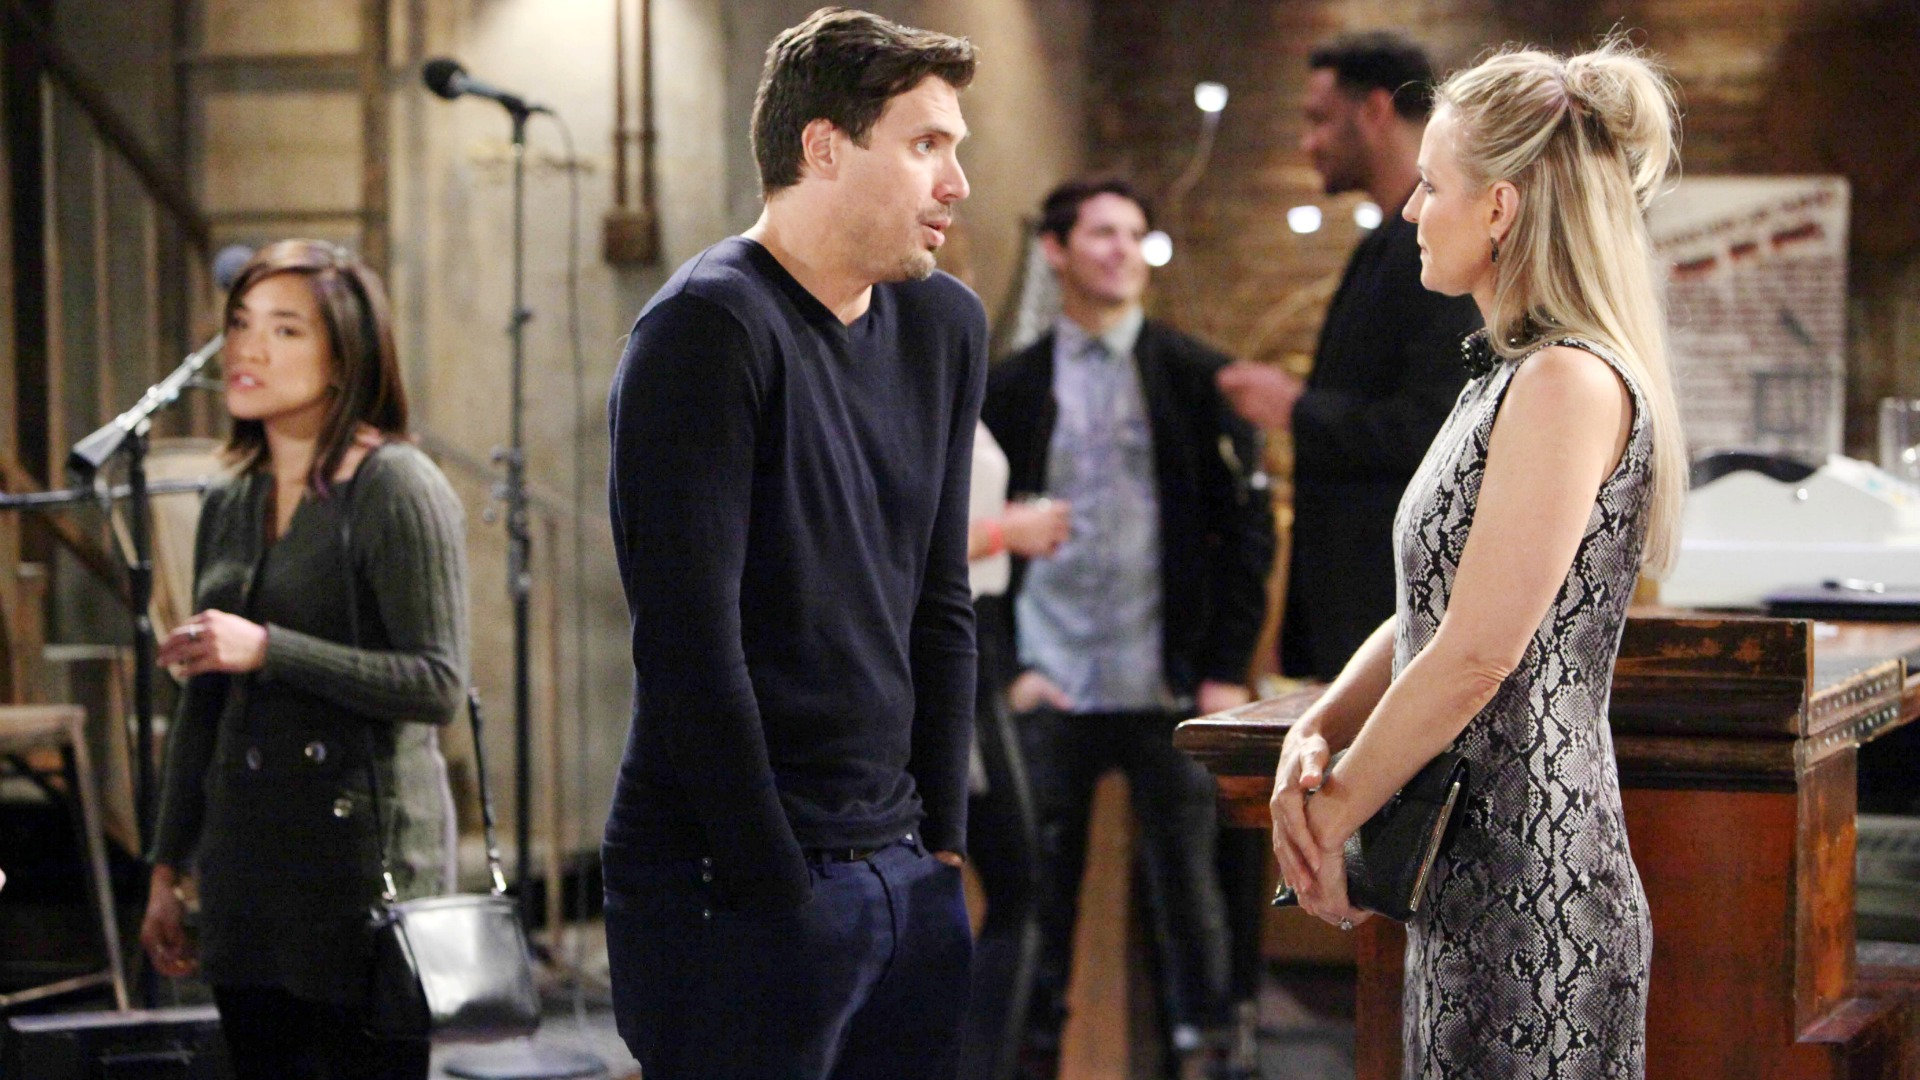 Sharon and Nick discuss their past.